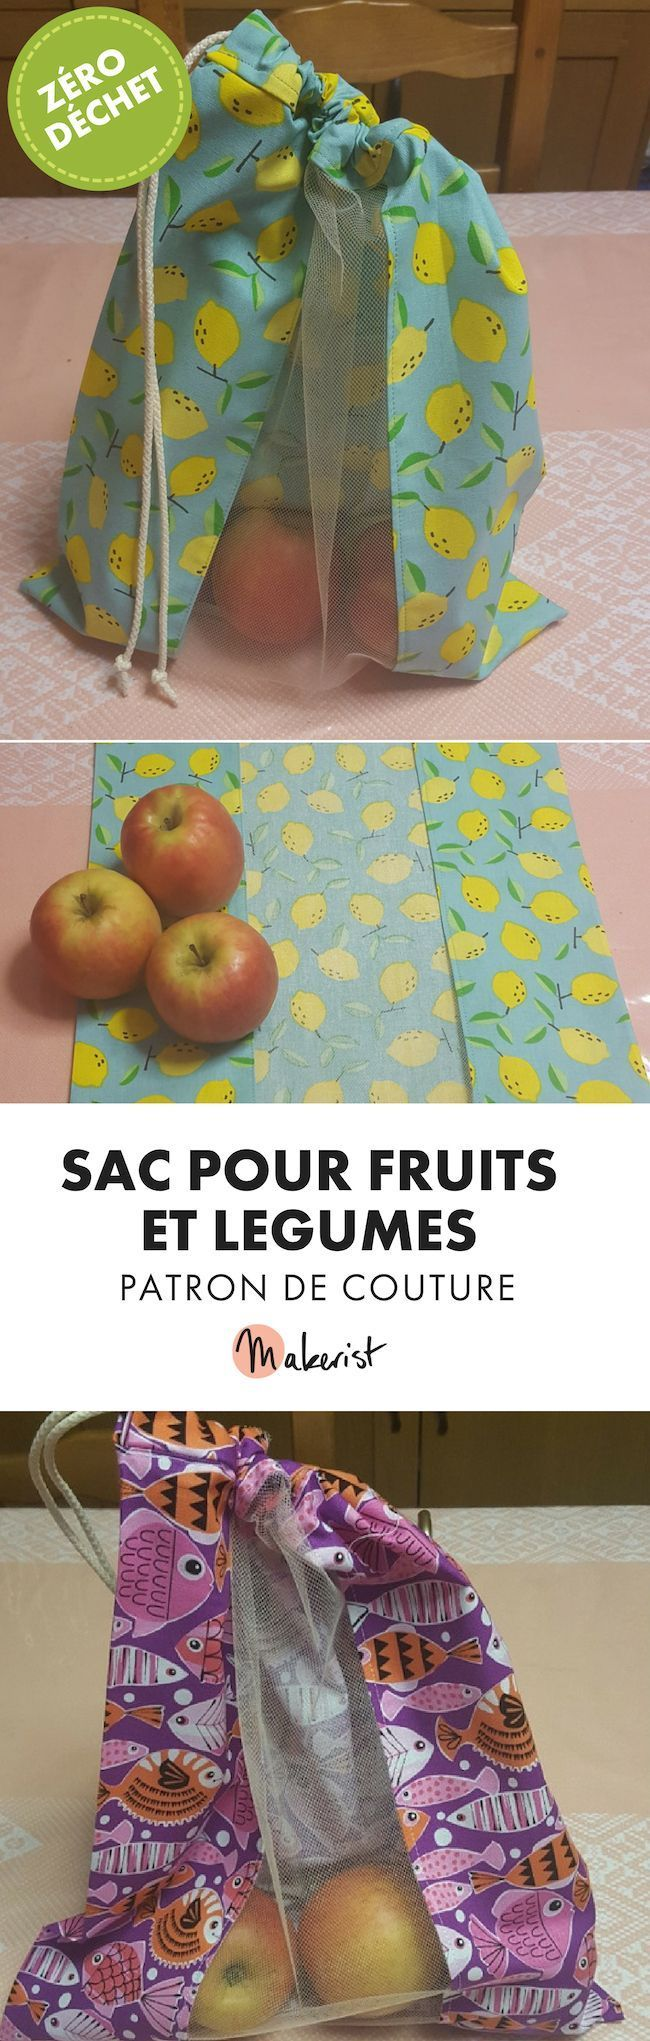 Patron de couture - sac fruits et légumes zéro déchet #couturezerodechet Sac pour fruits et légumes - Patron de couture PDF disponible sur makerist.fr #couture #food #wastefree #zerowaste #courses #responsable #diy #homediy #plasticfree #zerodechet #ecolo #coutureecolo #tuto #patron #patrondecouture #couturezerodechet #reutilisable #passioncouture #inspirationcouture #sacreutilisable #tutocouture#faitmain #coudrerendheureux #coudreavecmakerist #couture #couturefacile #makeristfrance #couture #couturezerodechet